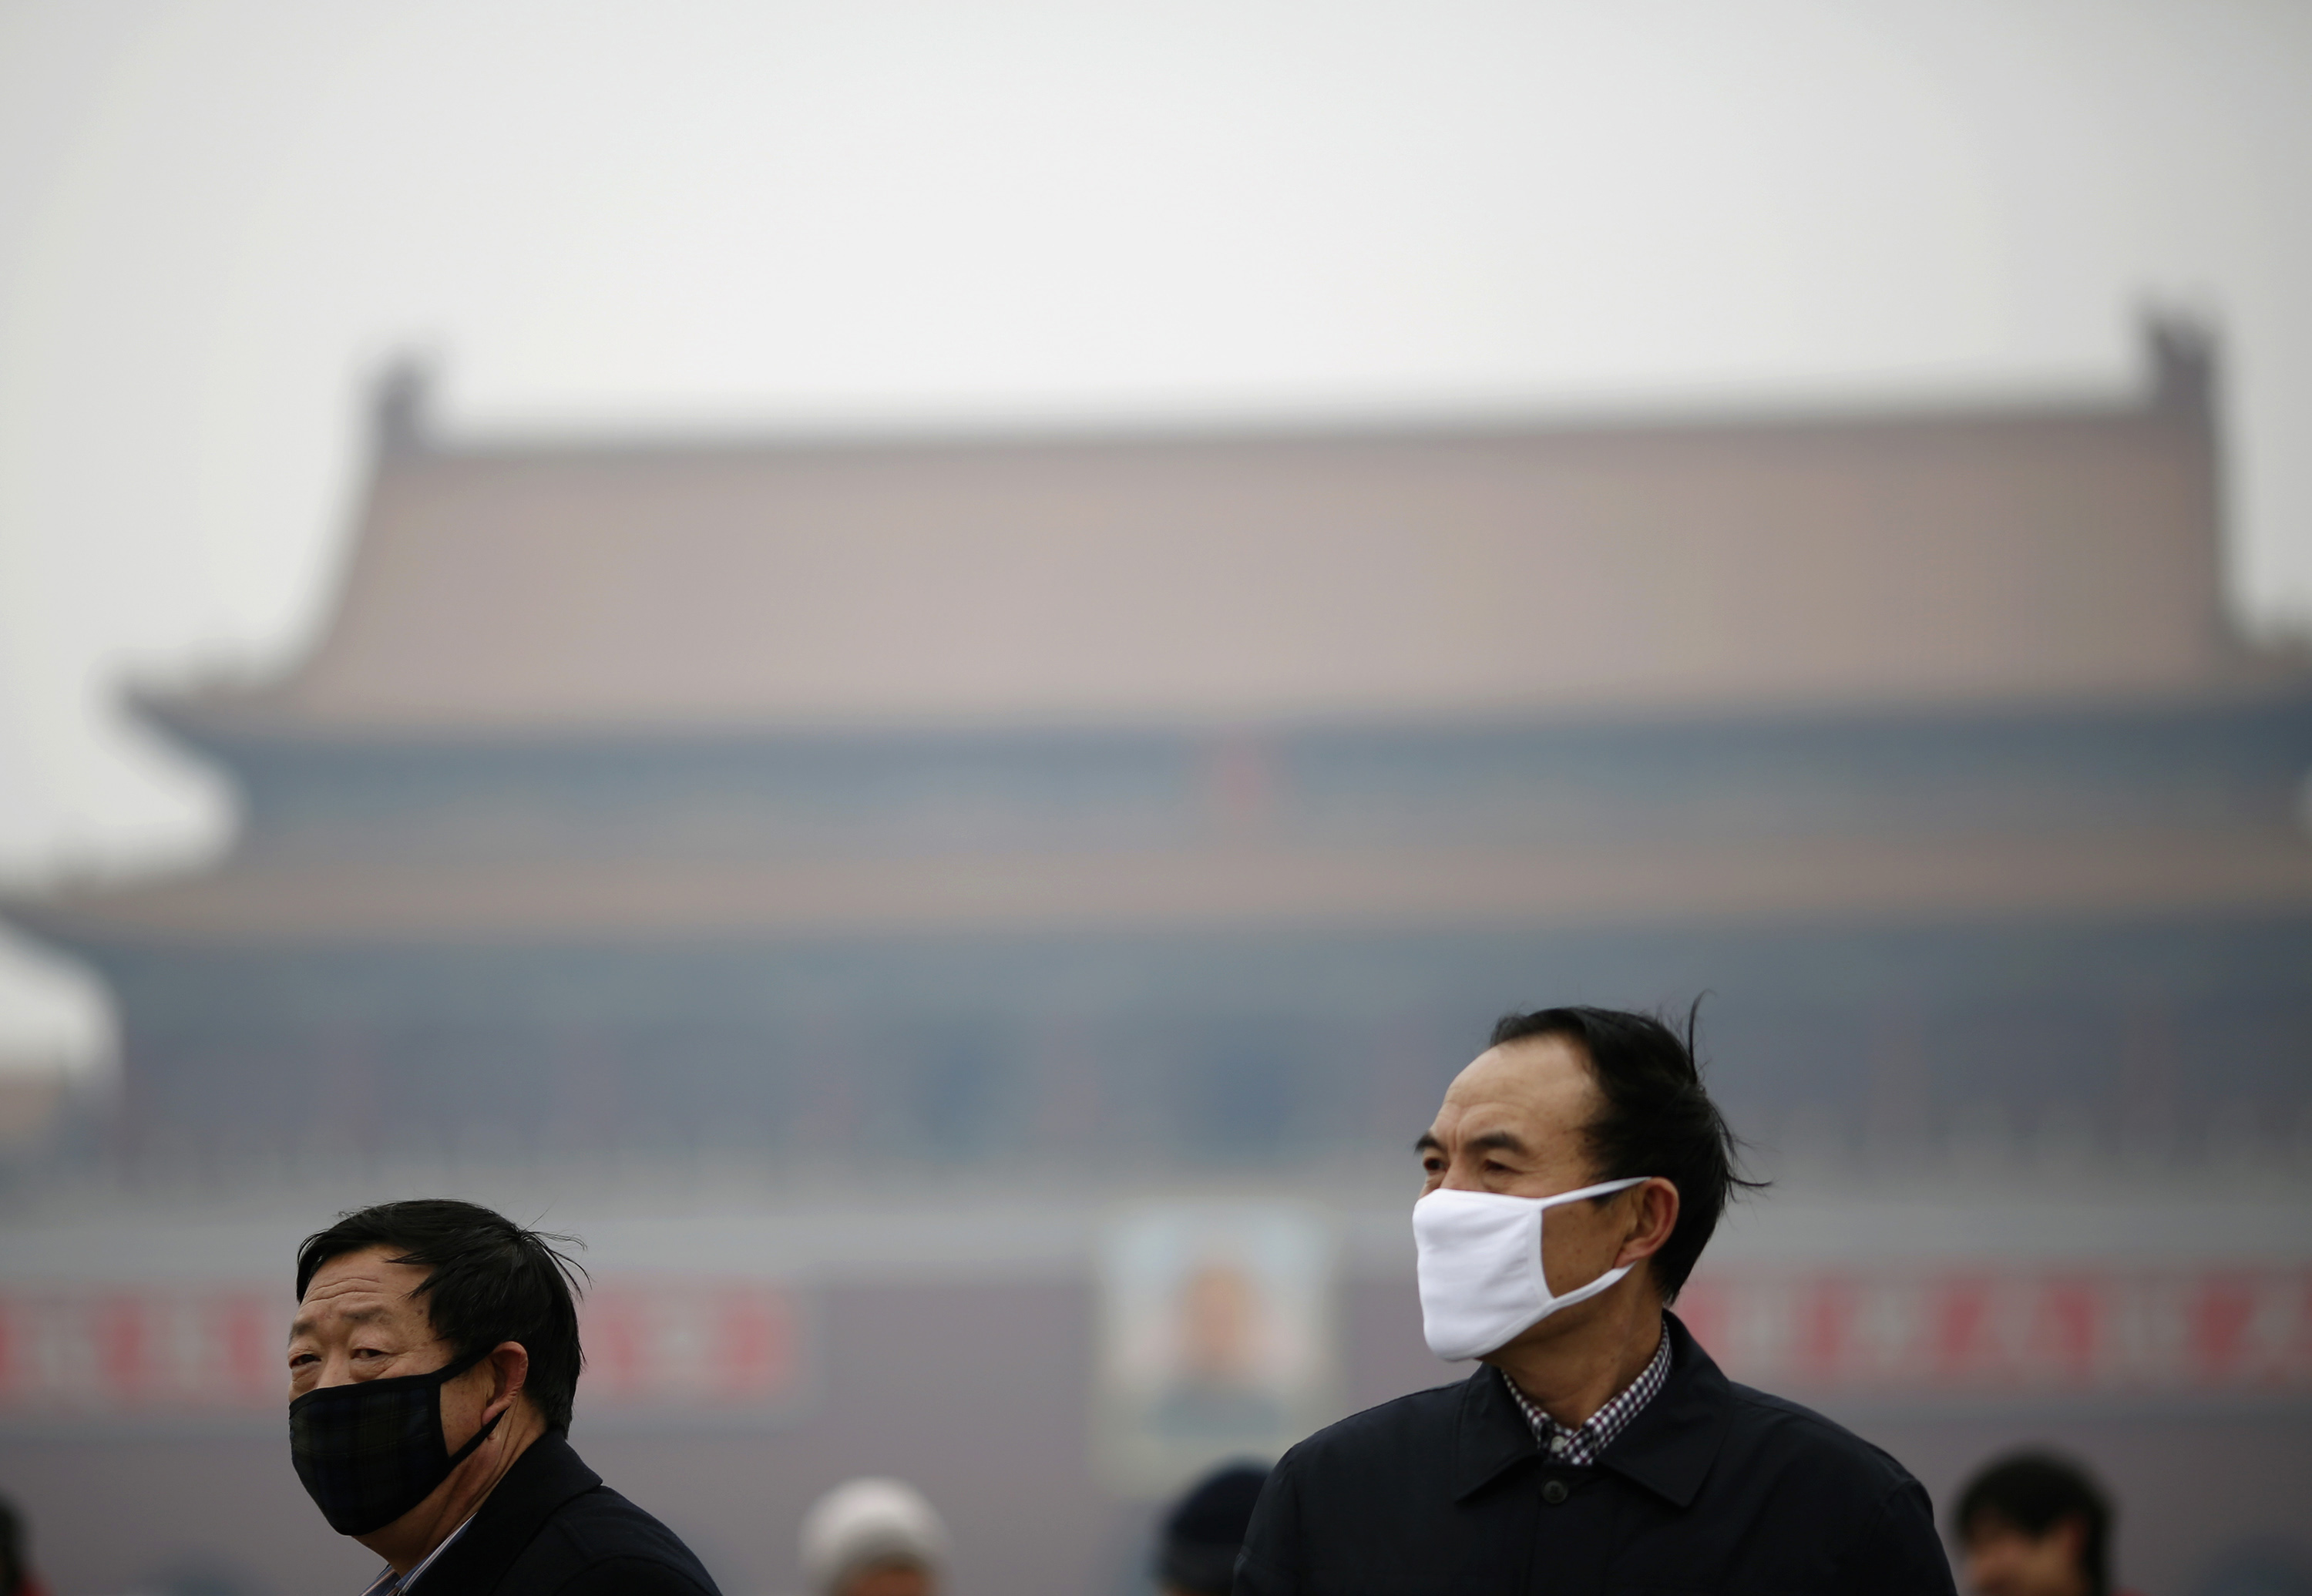 People wearing masks are seen on a hazy day at Tiananmen Square in Beijing February 13, 2014.